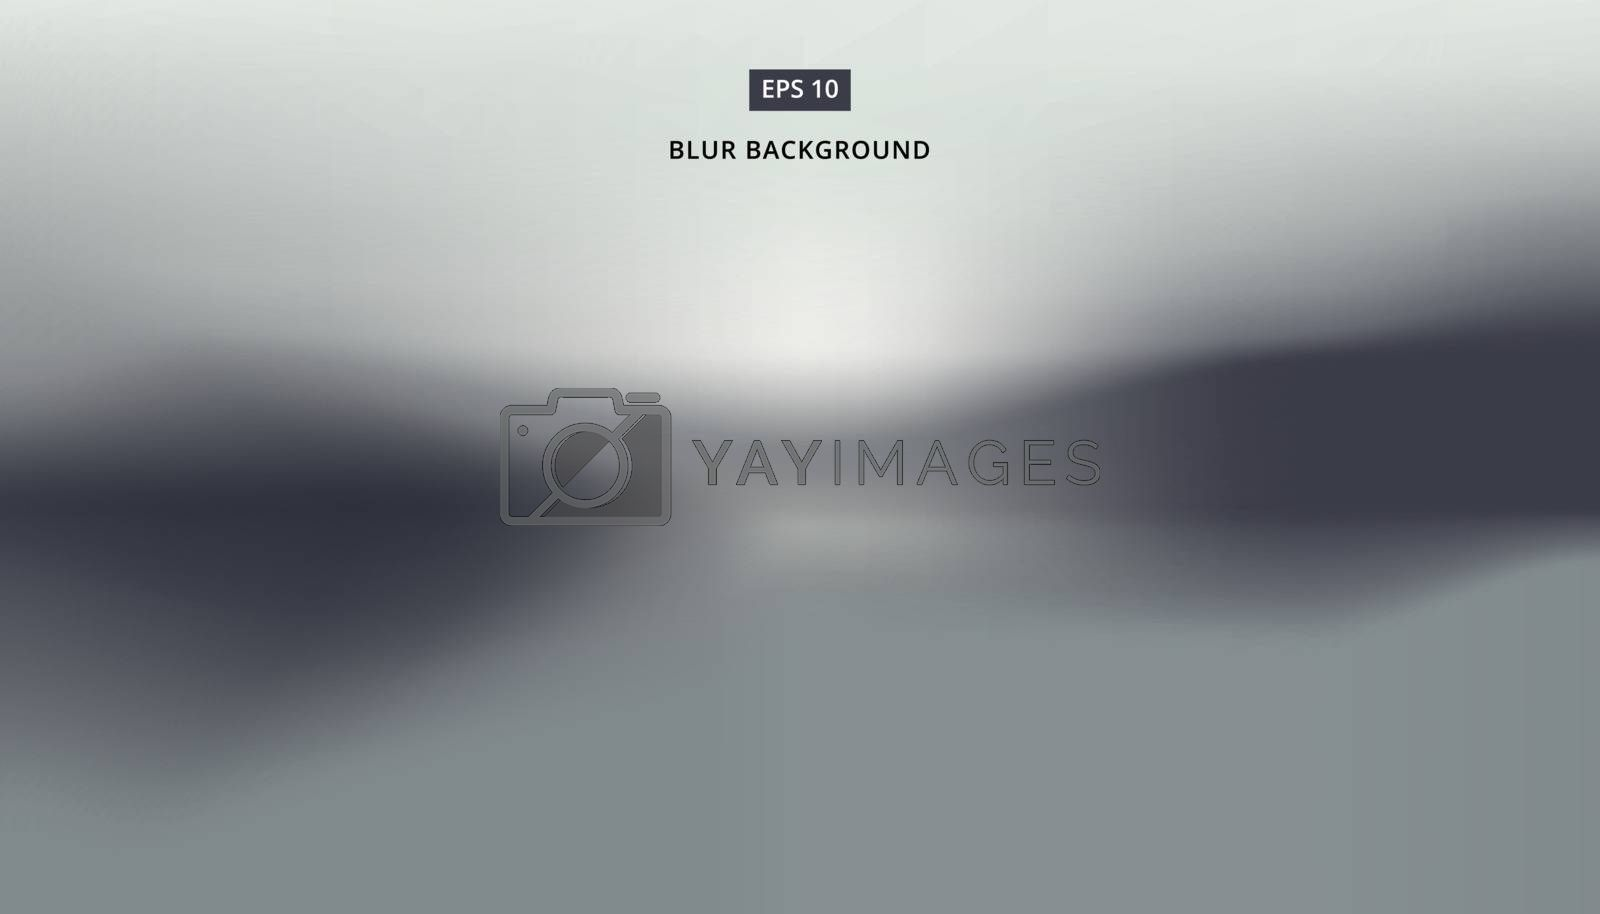 Background image landscape, blurred gray vector